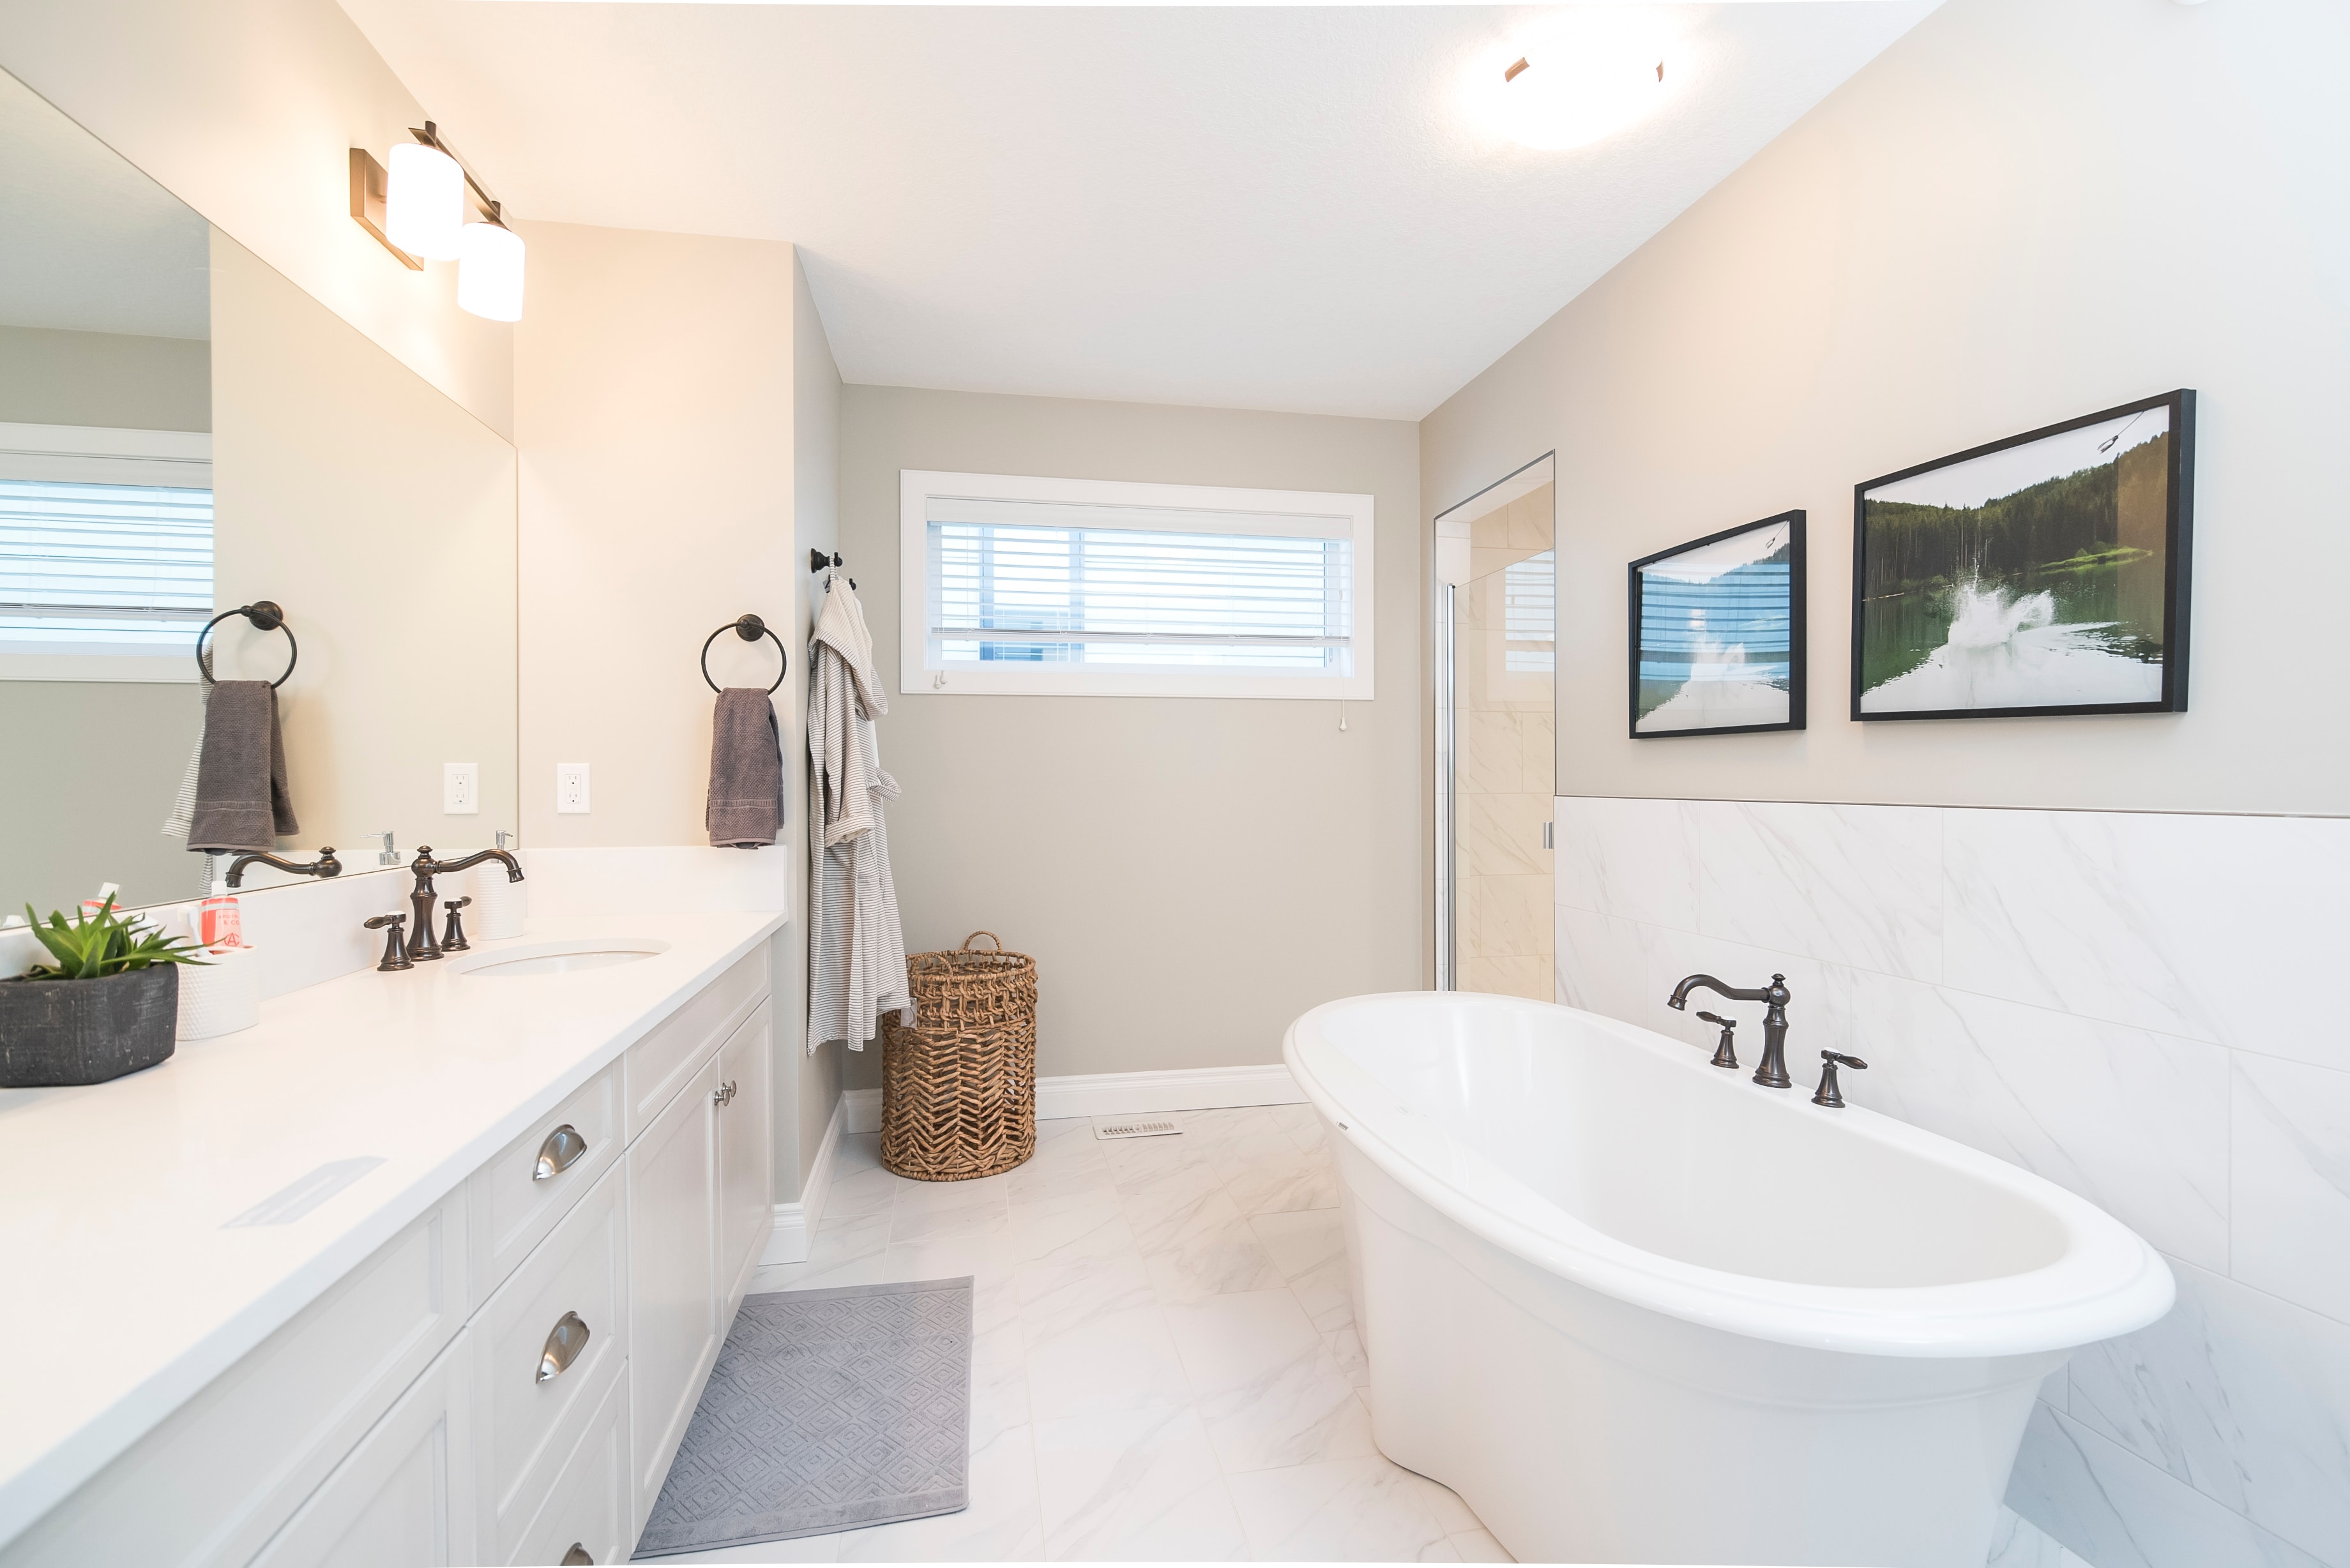 8 Fun Decor Ideas for Family Bathrooms that Combine Fashion and